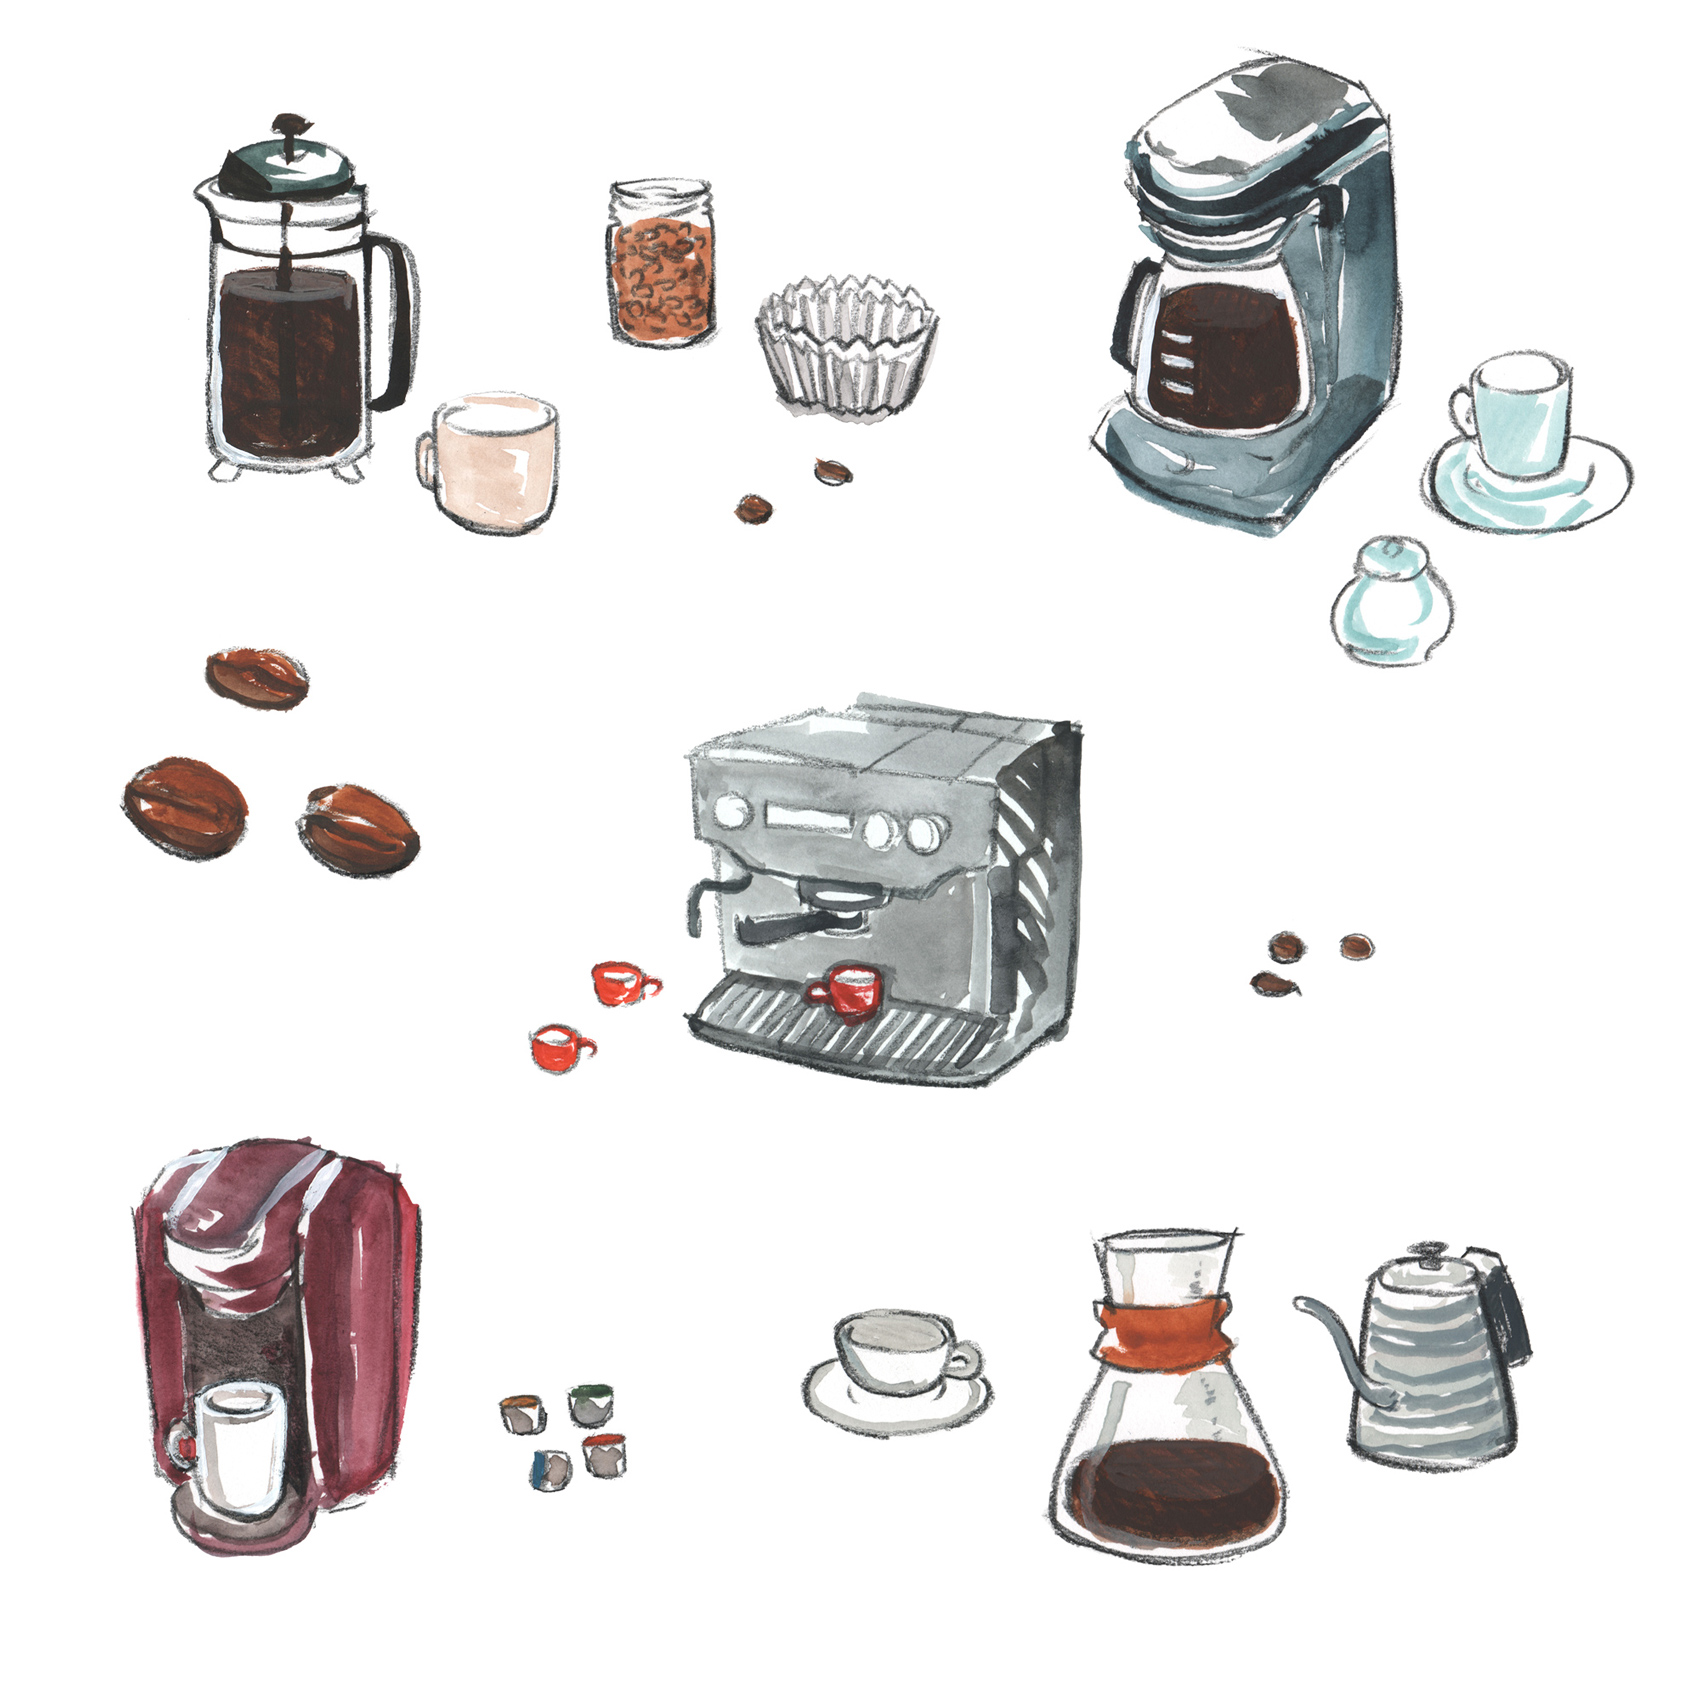 all-coffeemakers-small